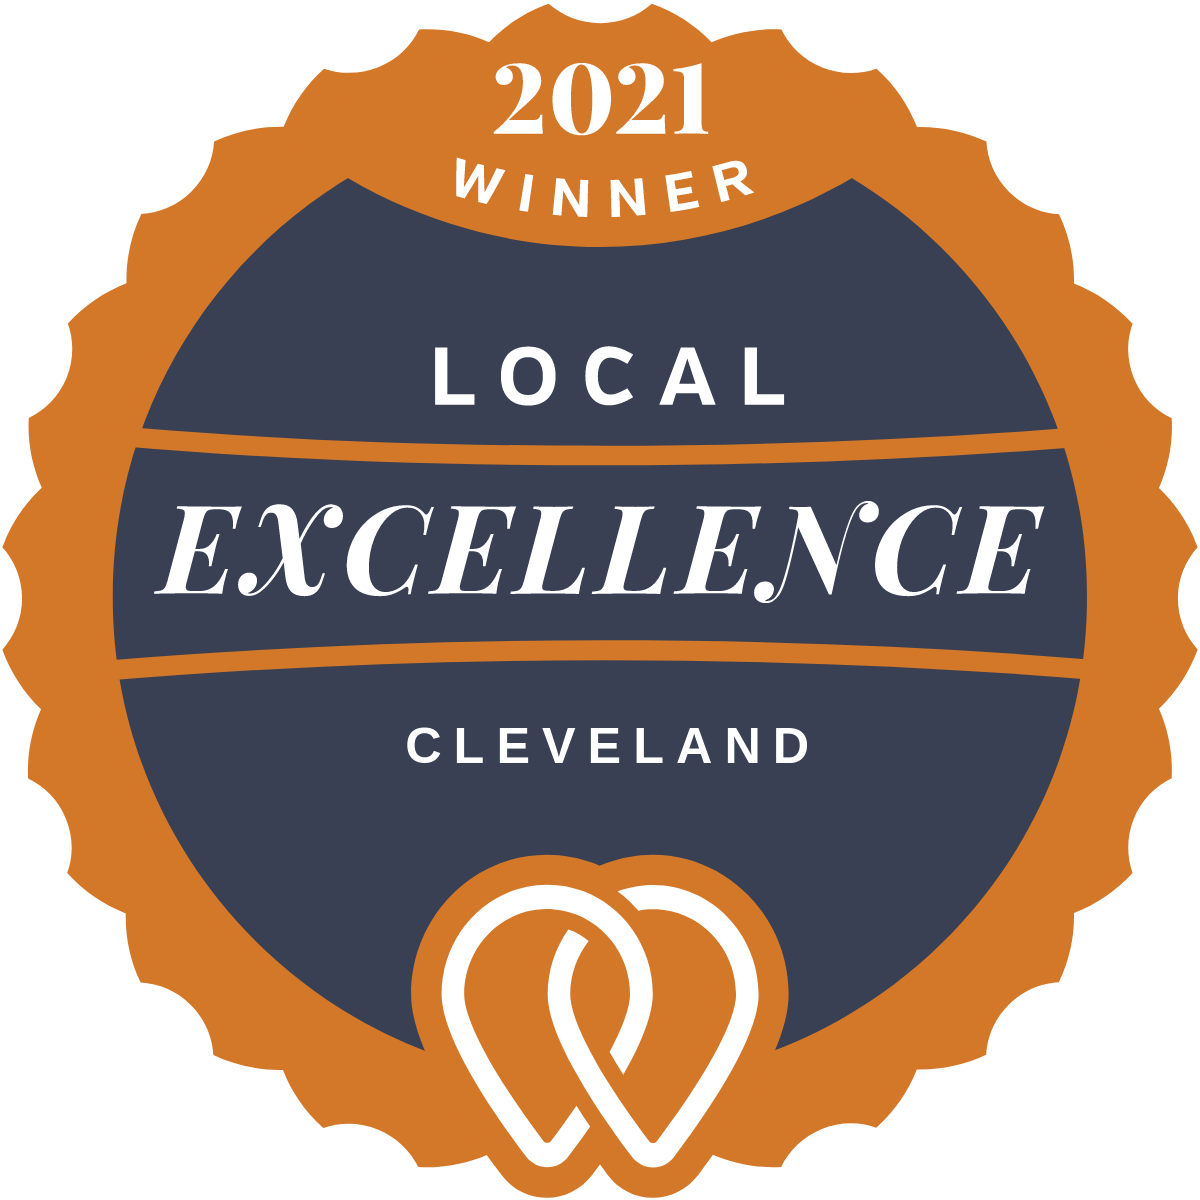 2021 Local Excellence Winner in Cleveland, OH